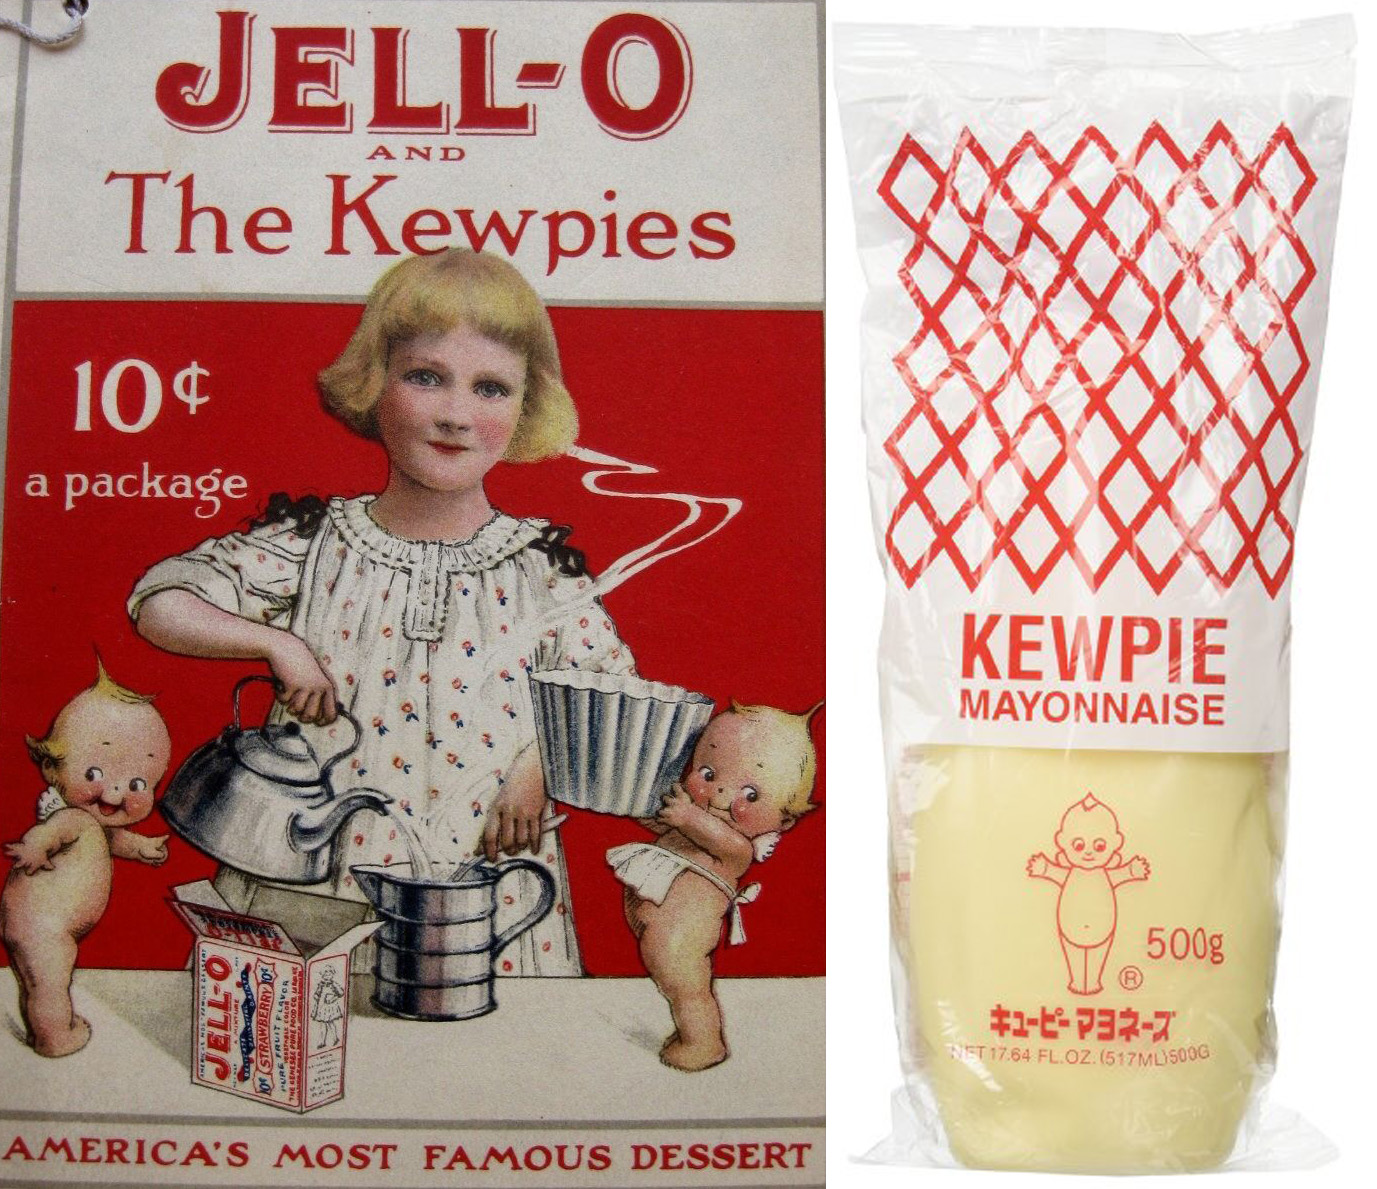 jello kewpies EN MAYONAISE